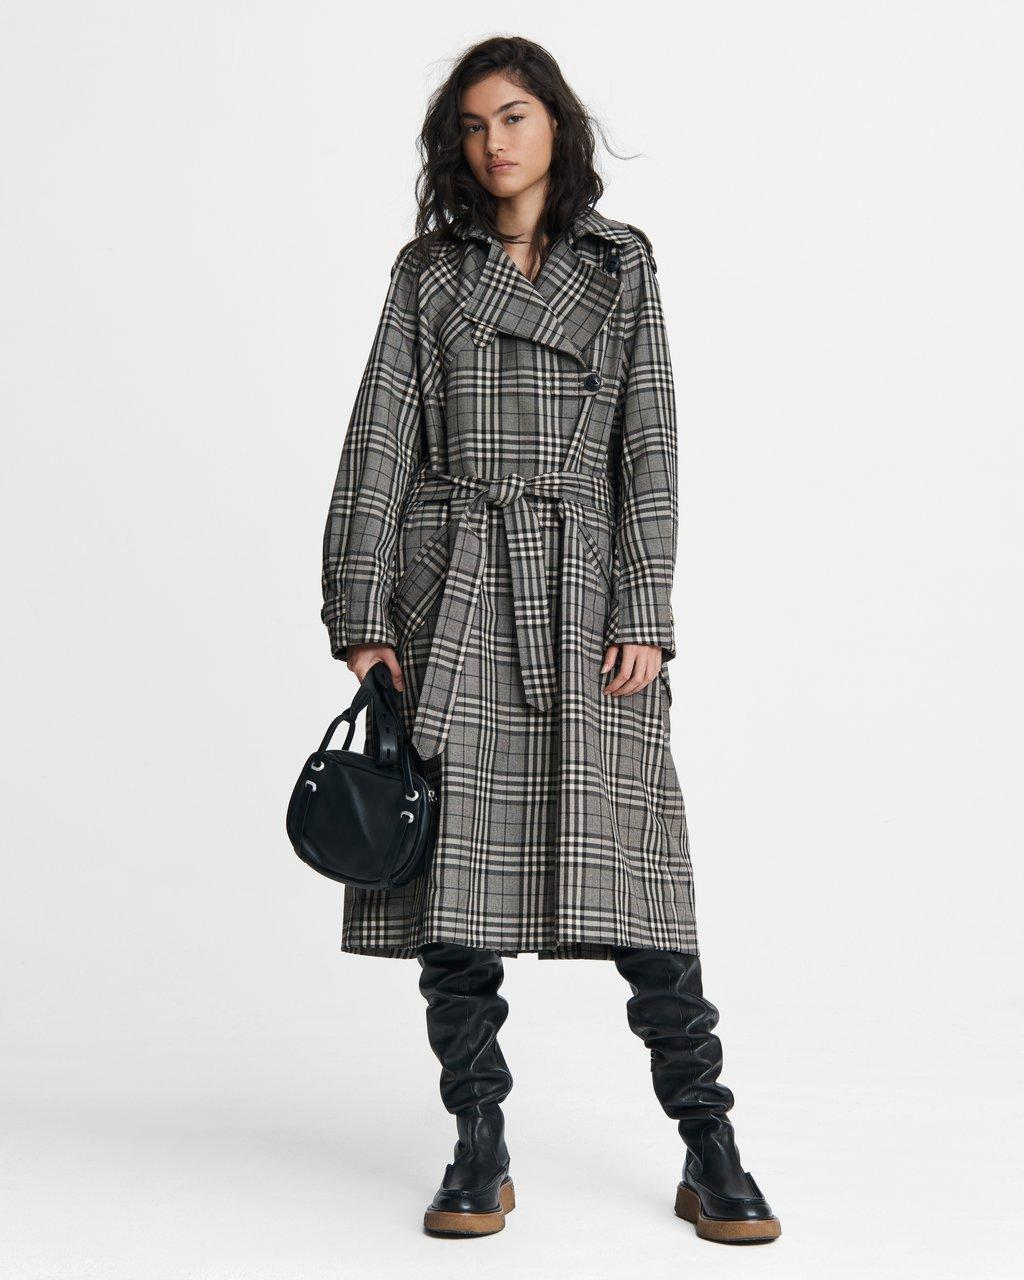 Harris Plaid Cotton Blend Trench